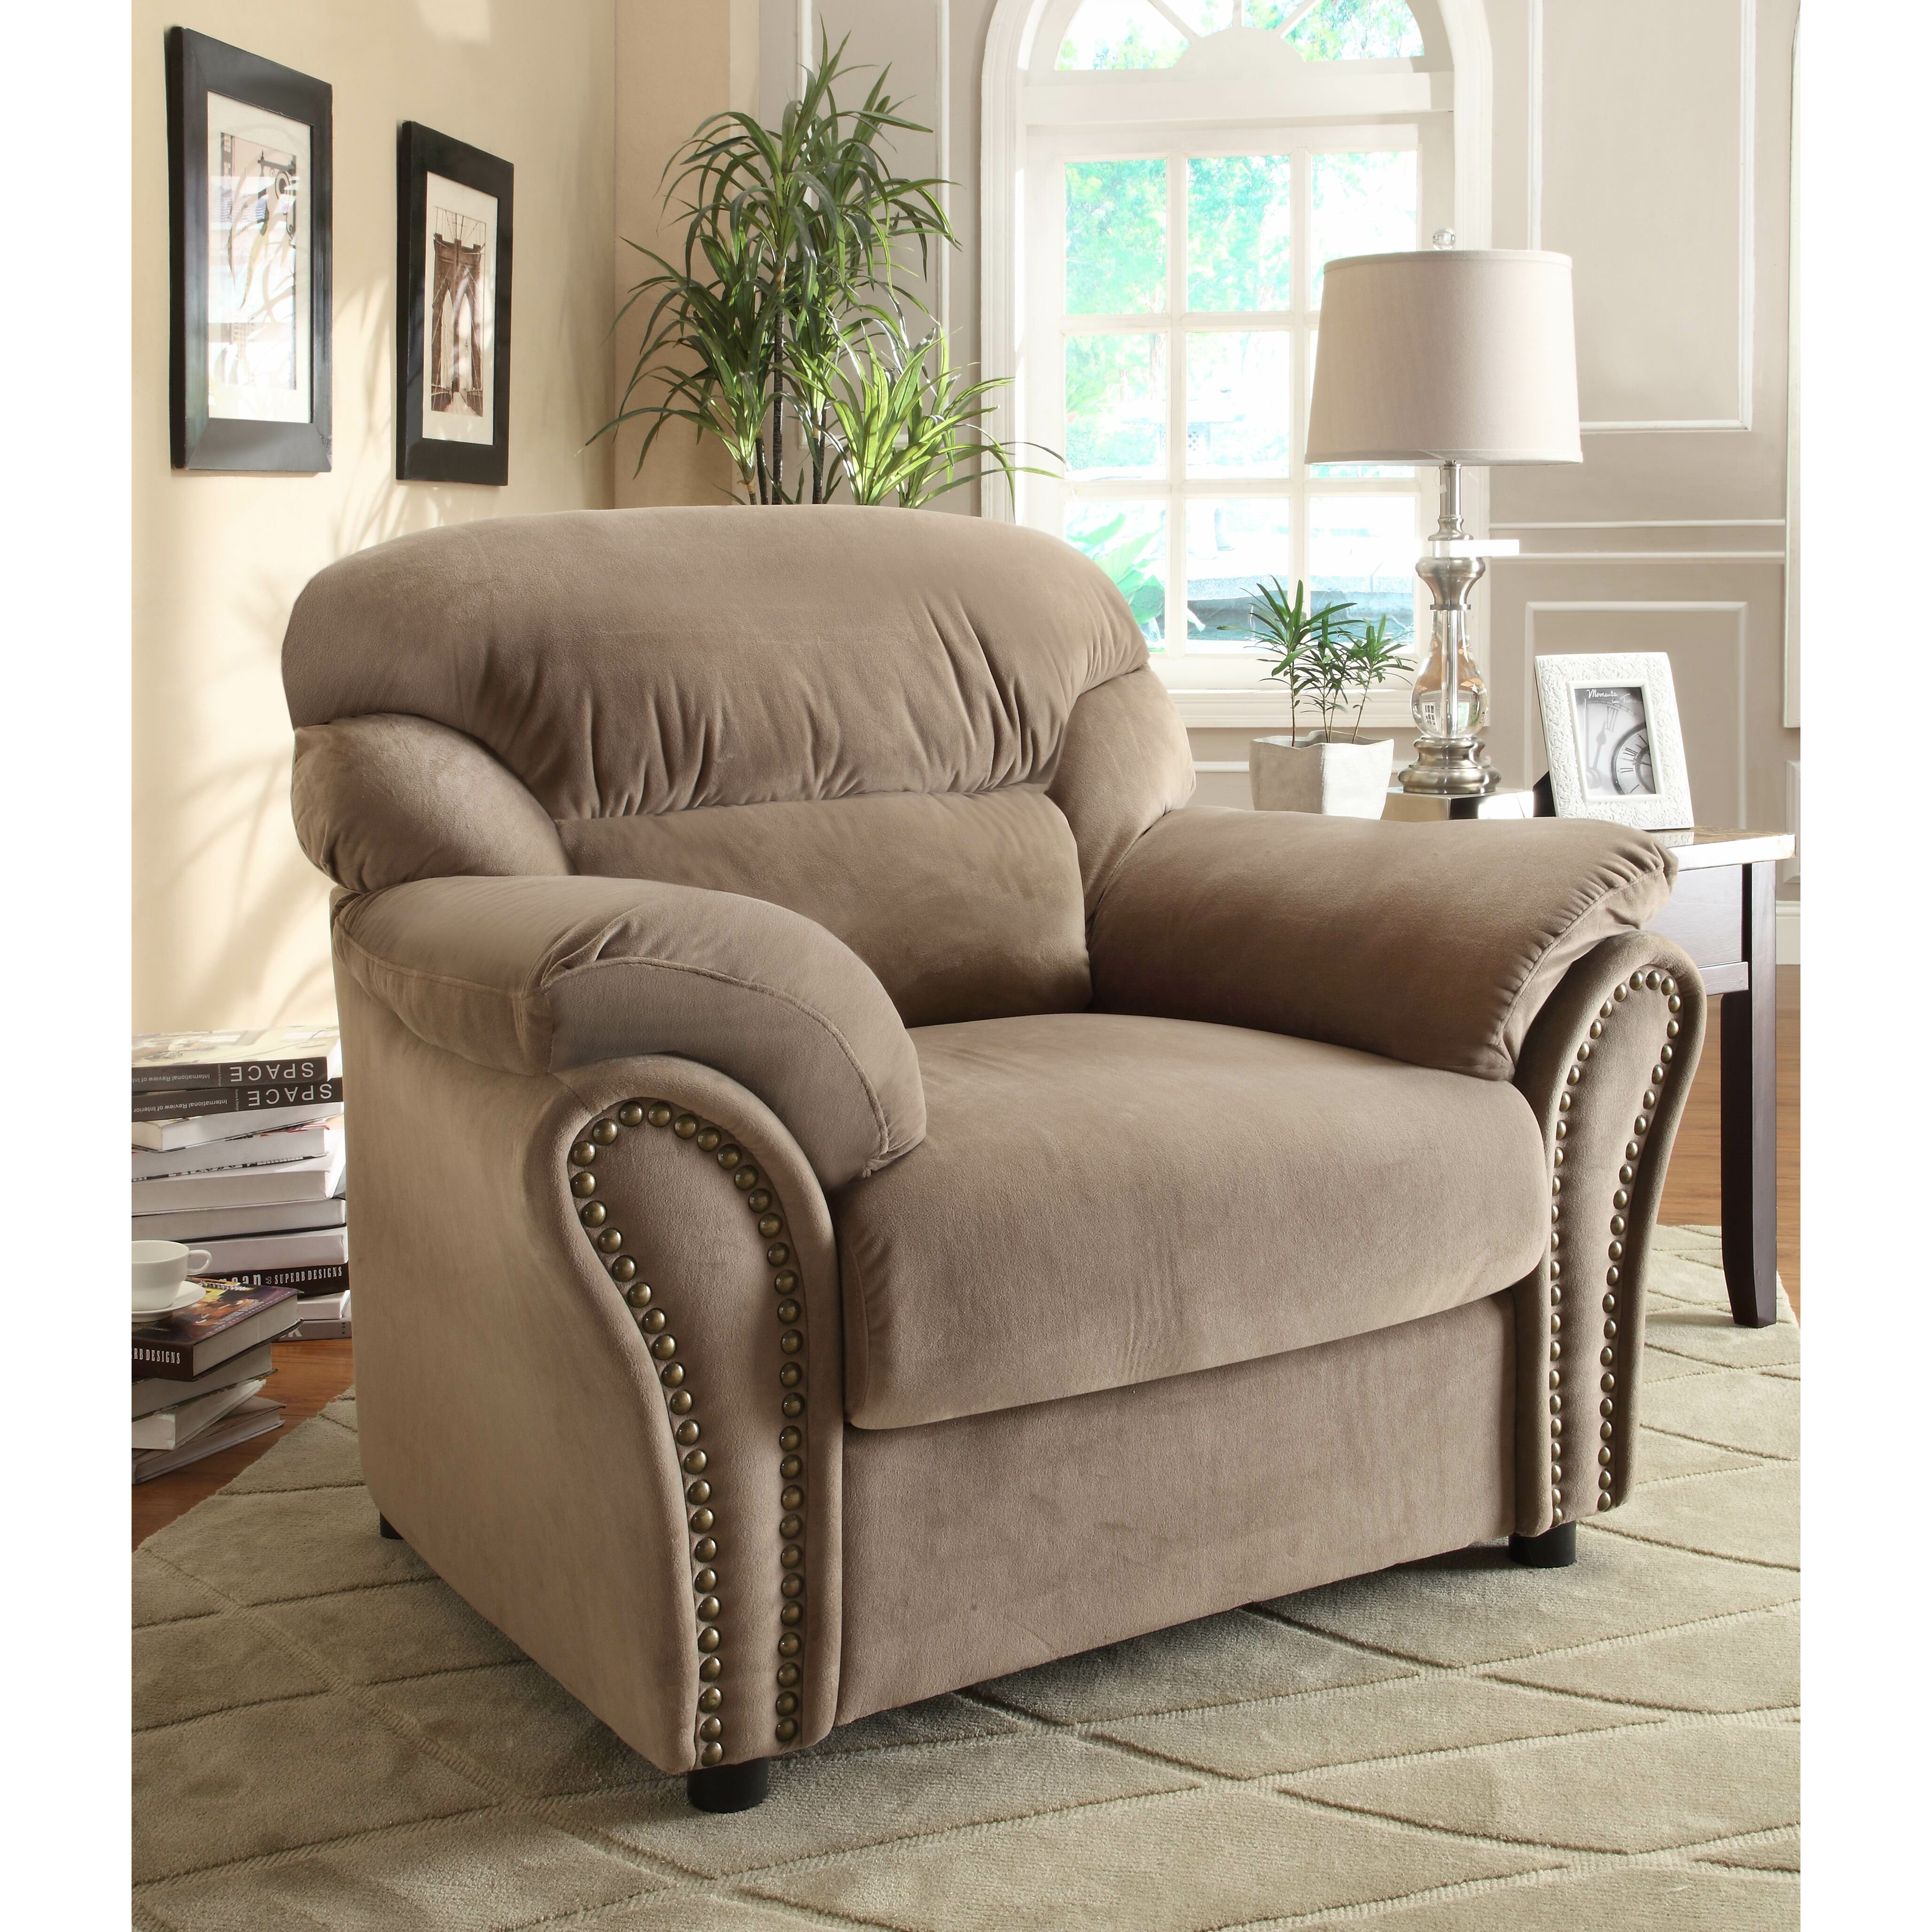 woodhaven hill valentina living room collection reviews wayfair. Black Bedroom Furniture Sets. Home Design Ideas